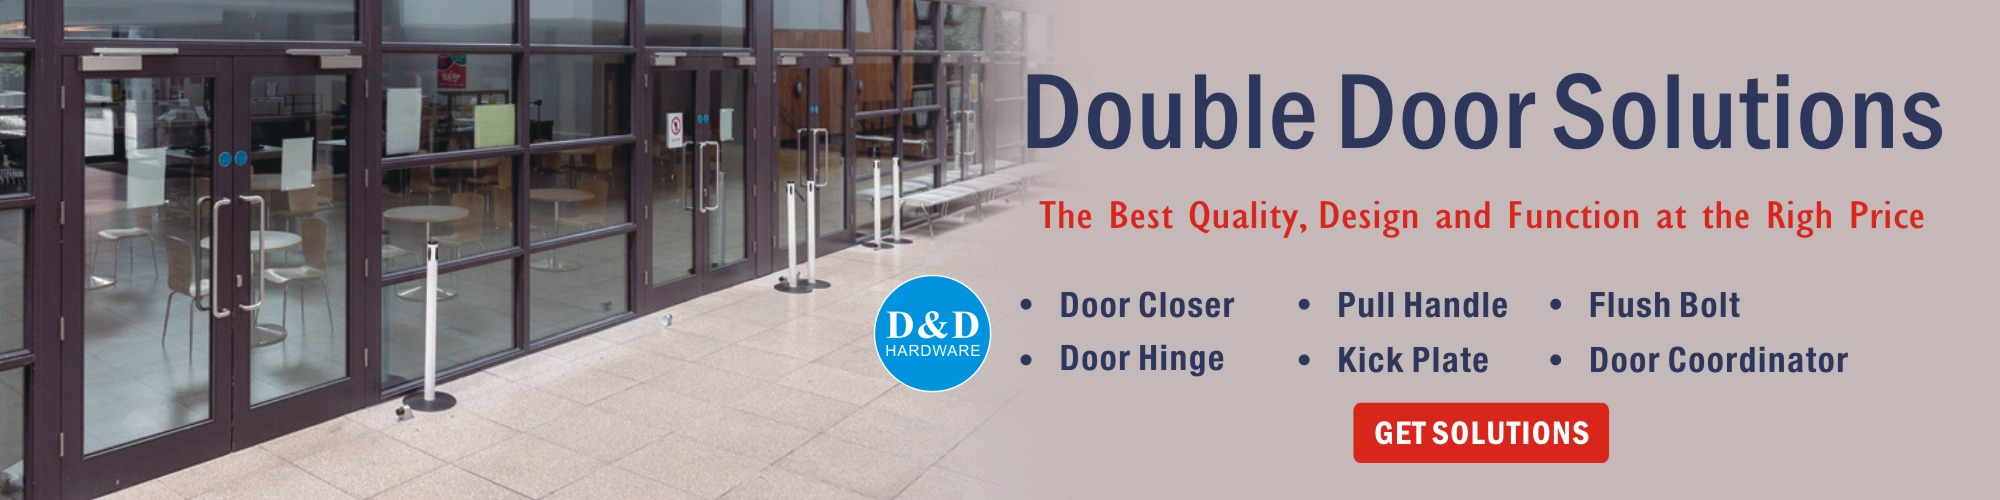 Double door solutions-D&D Hardware